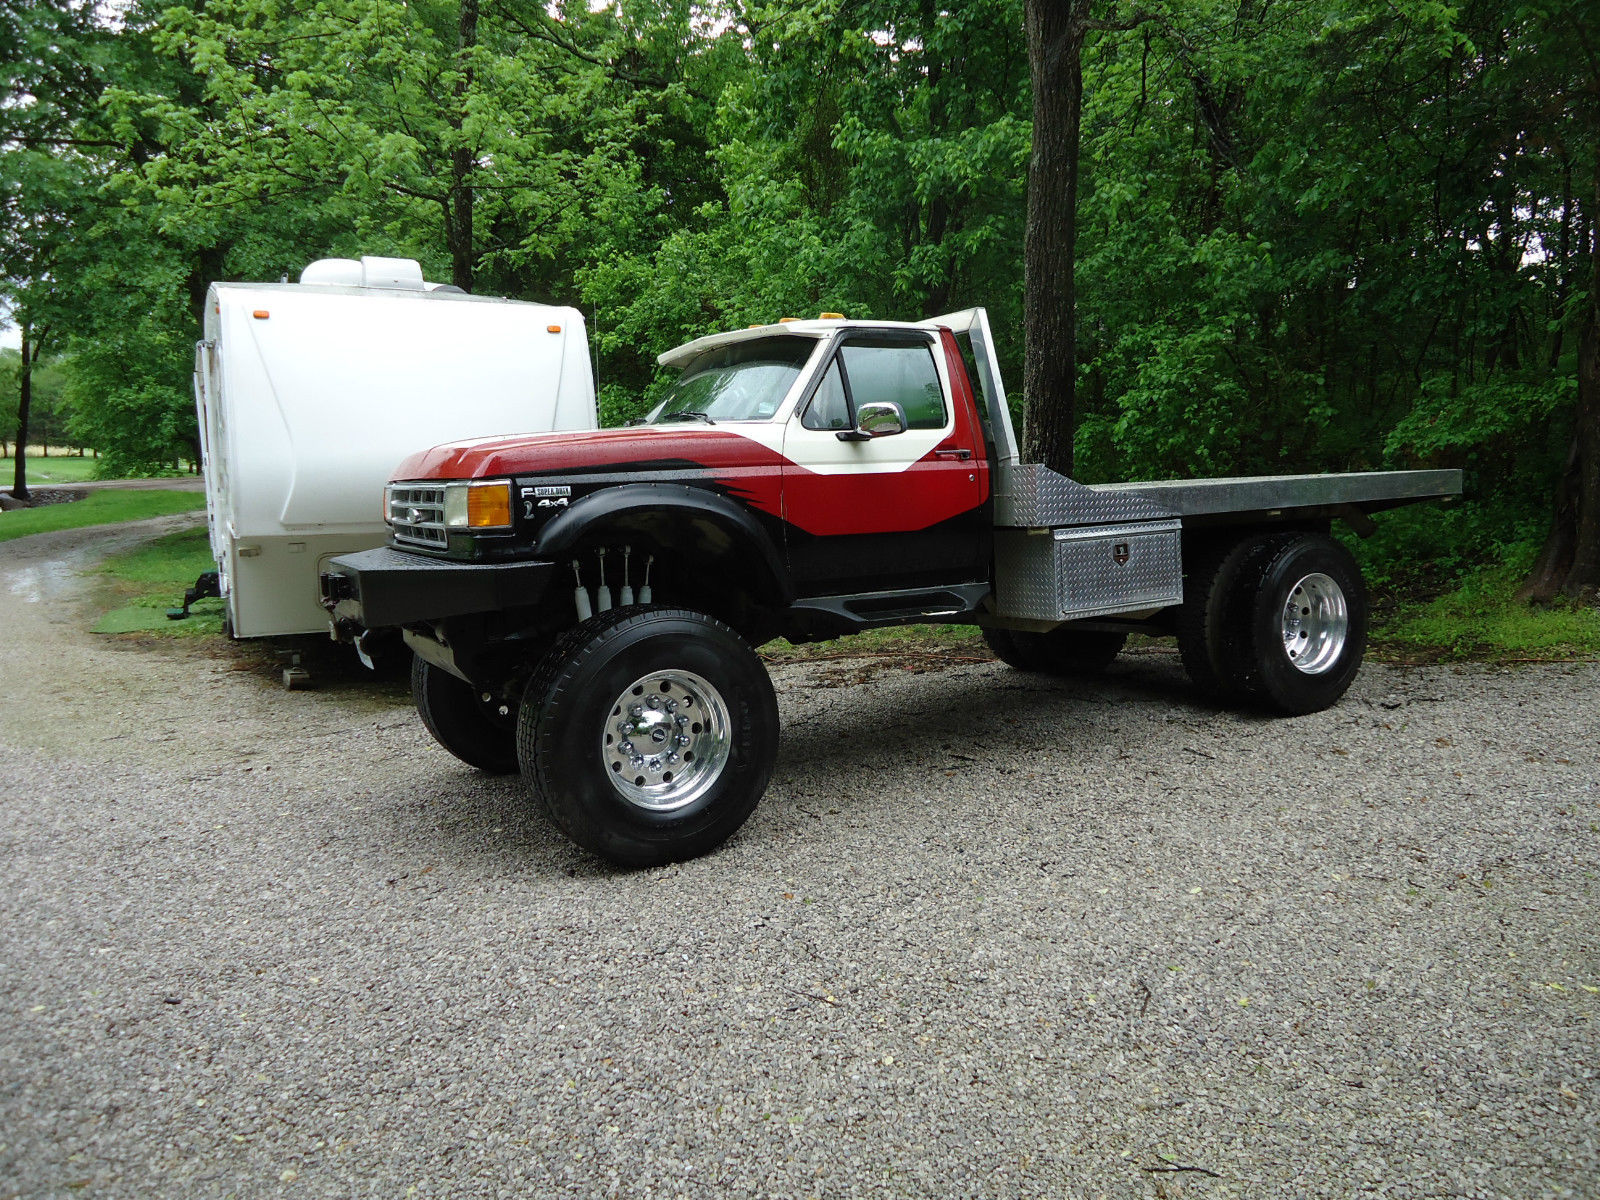 1989 Ford F450 Super Duty 7.3 Turbo Deisel Monster Truck ...